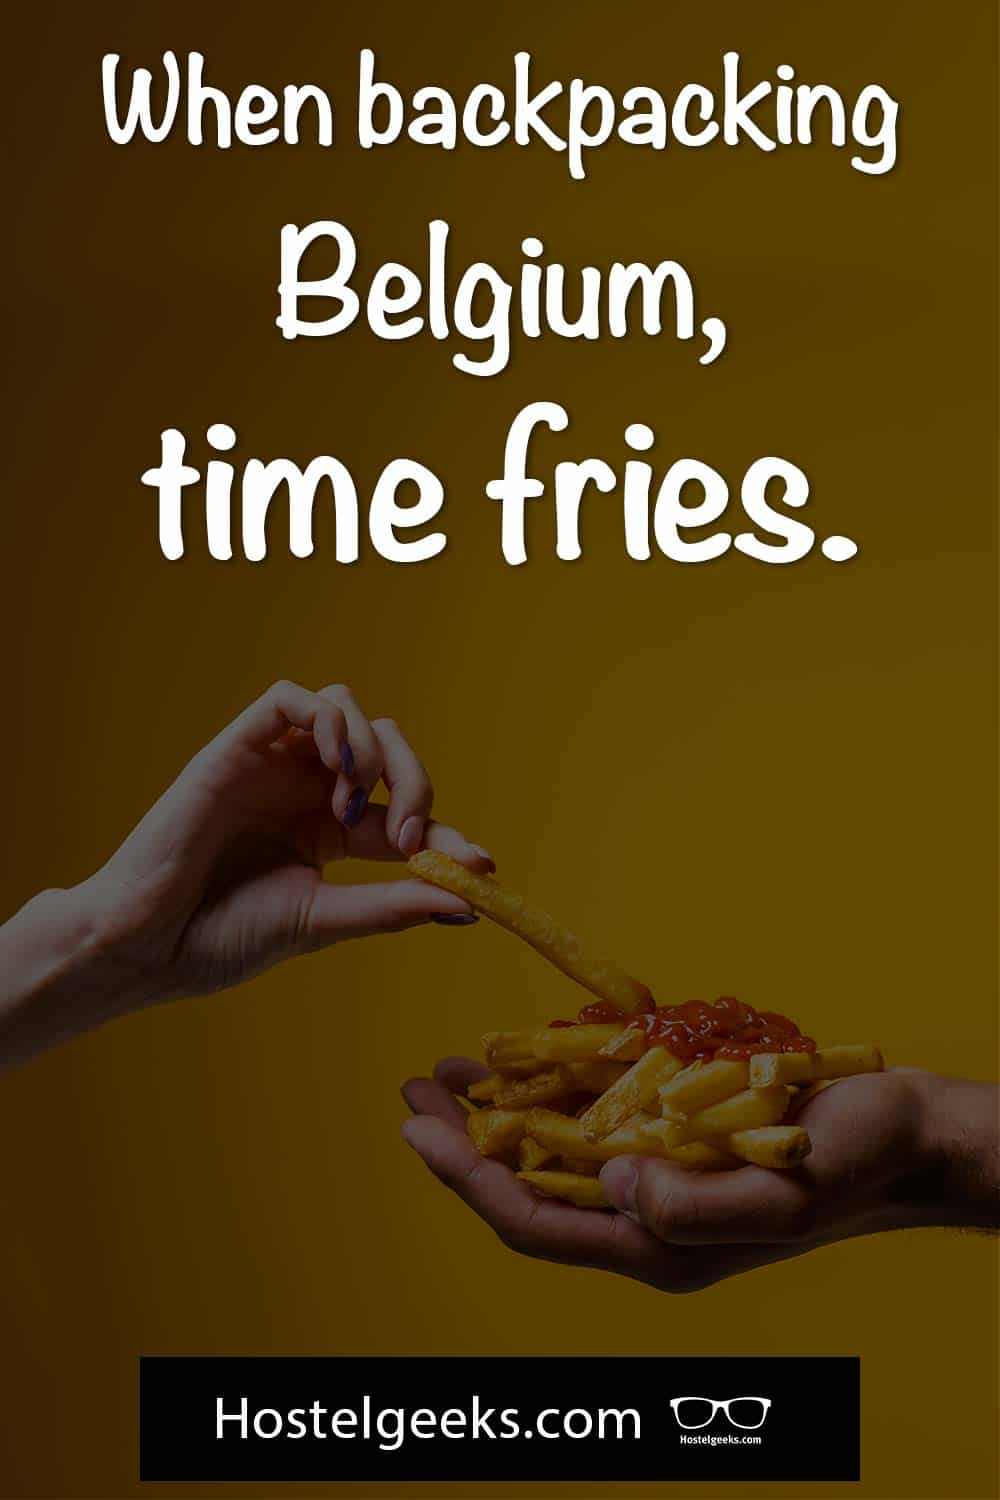 When backpacking Belgium, time fries.